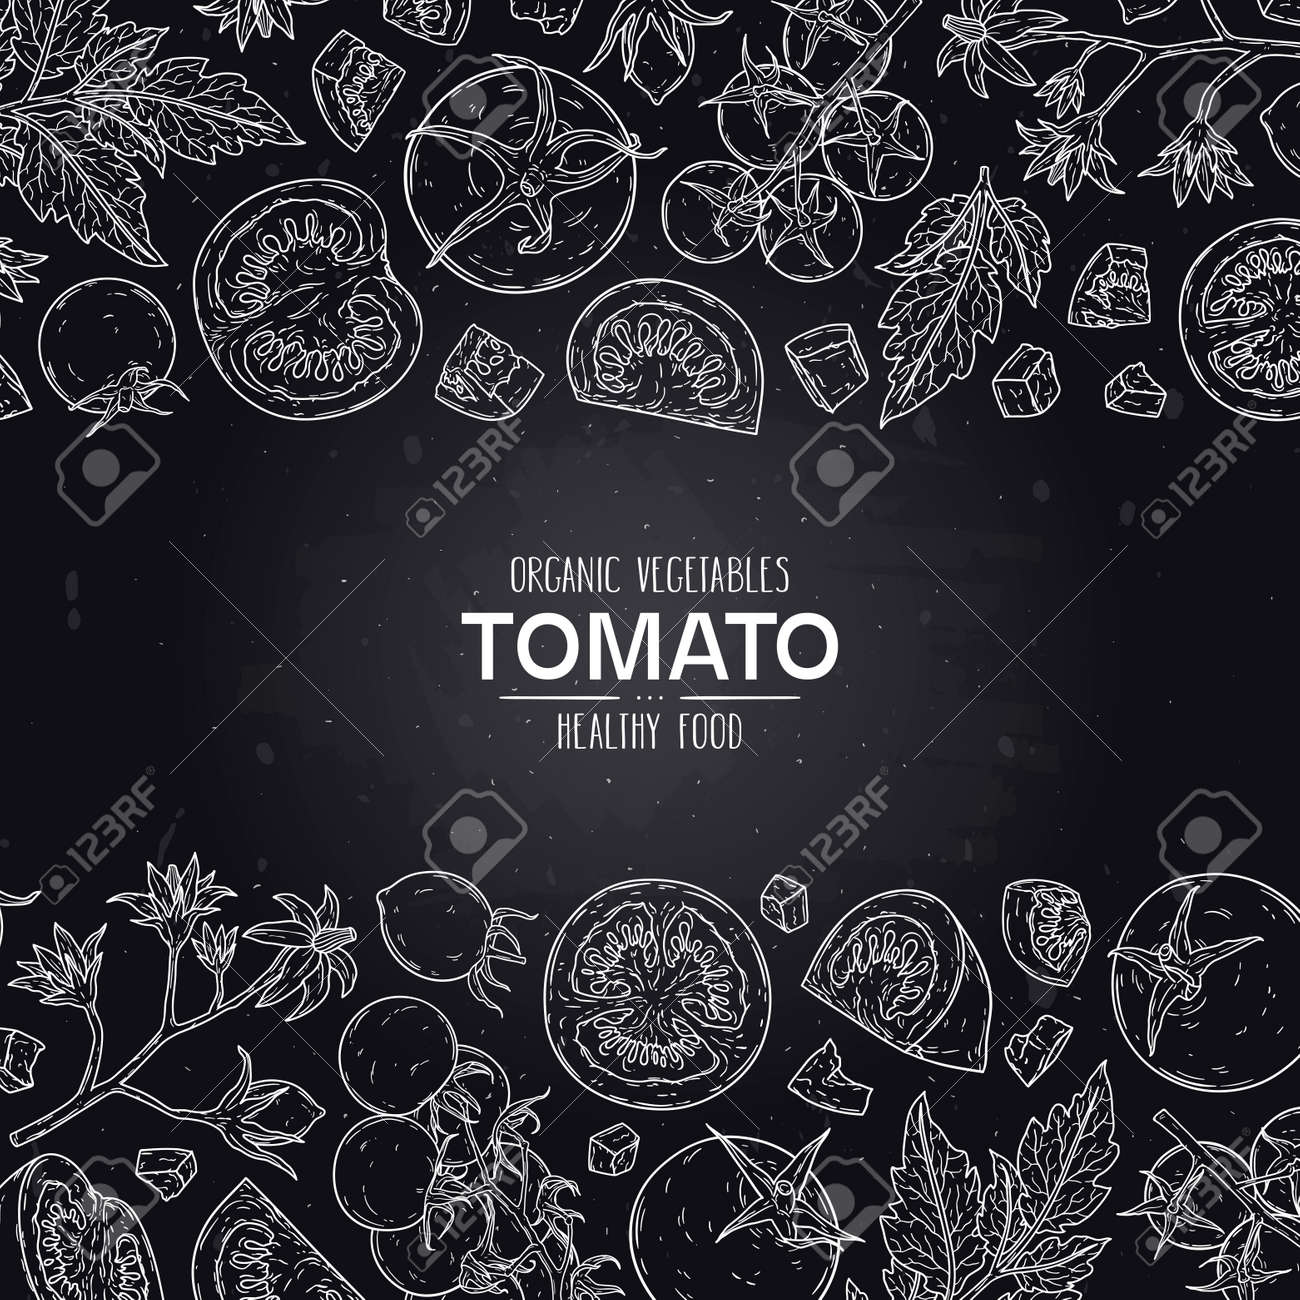 Vector hand drawn frame with organic tomatoes, slices, half, flower, branch with leaves and cherry tomatoes. Healthy doodle sketch illustration in chalkboard style. - 168597402